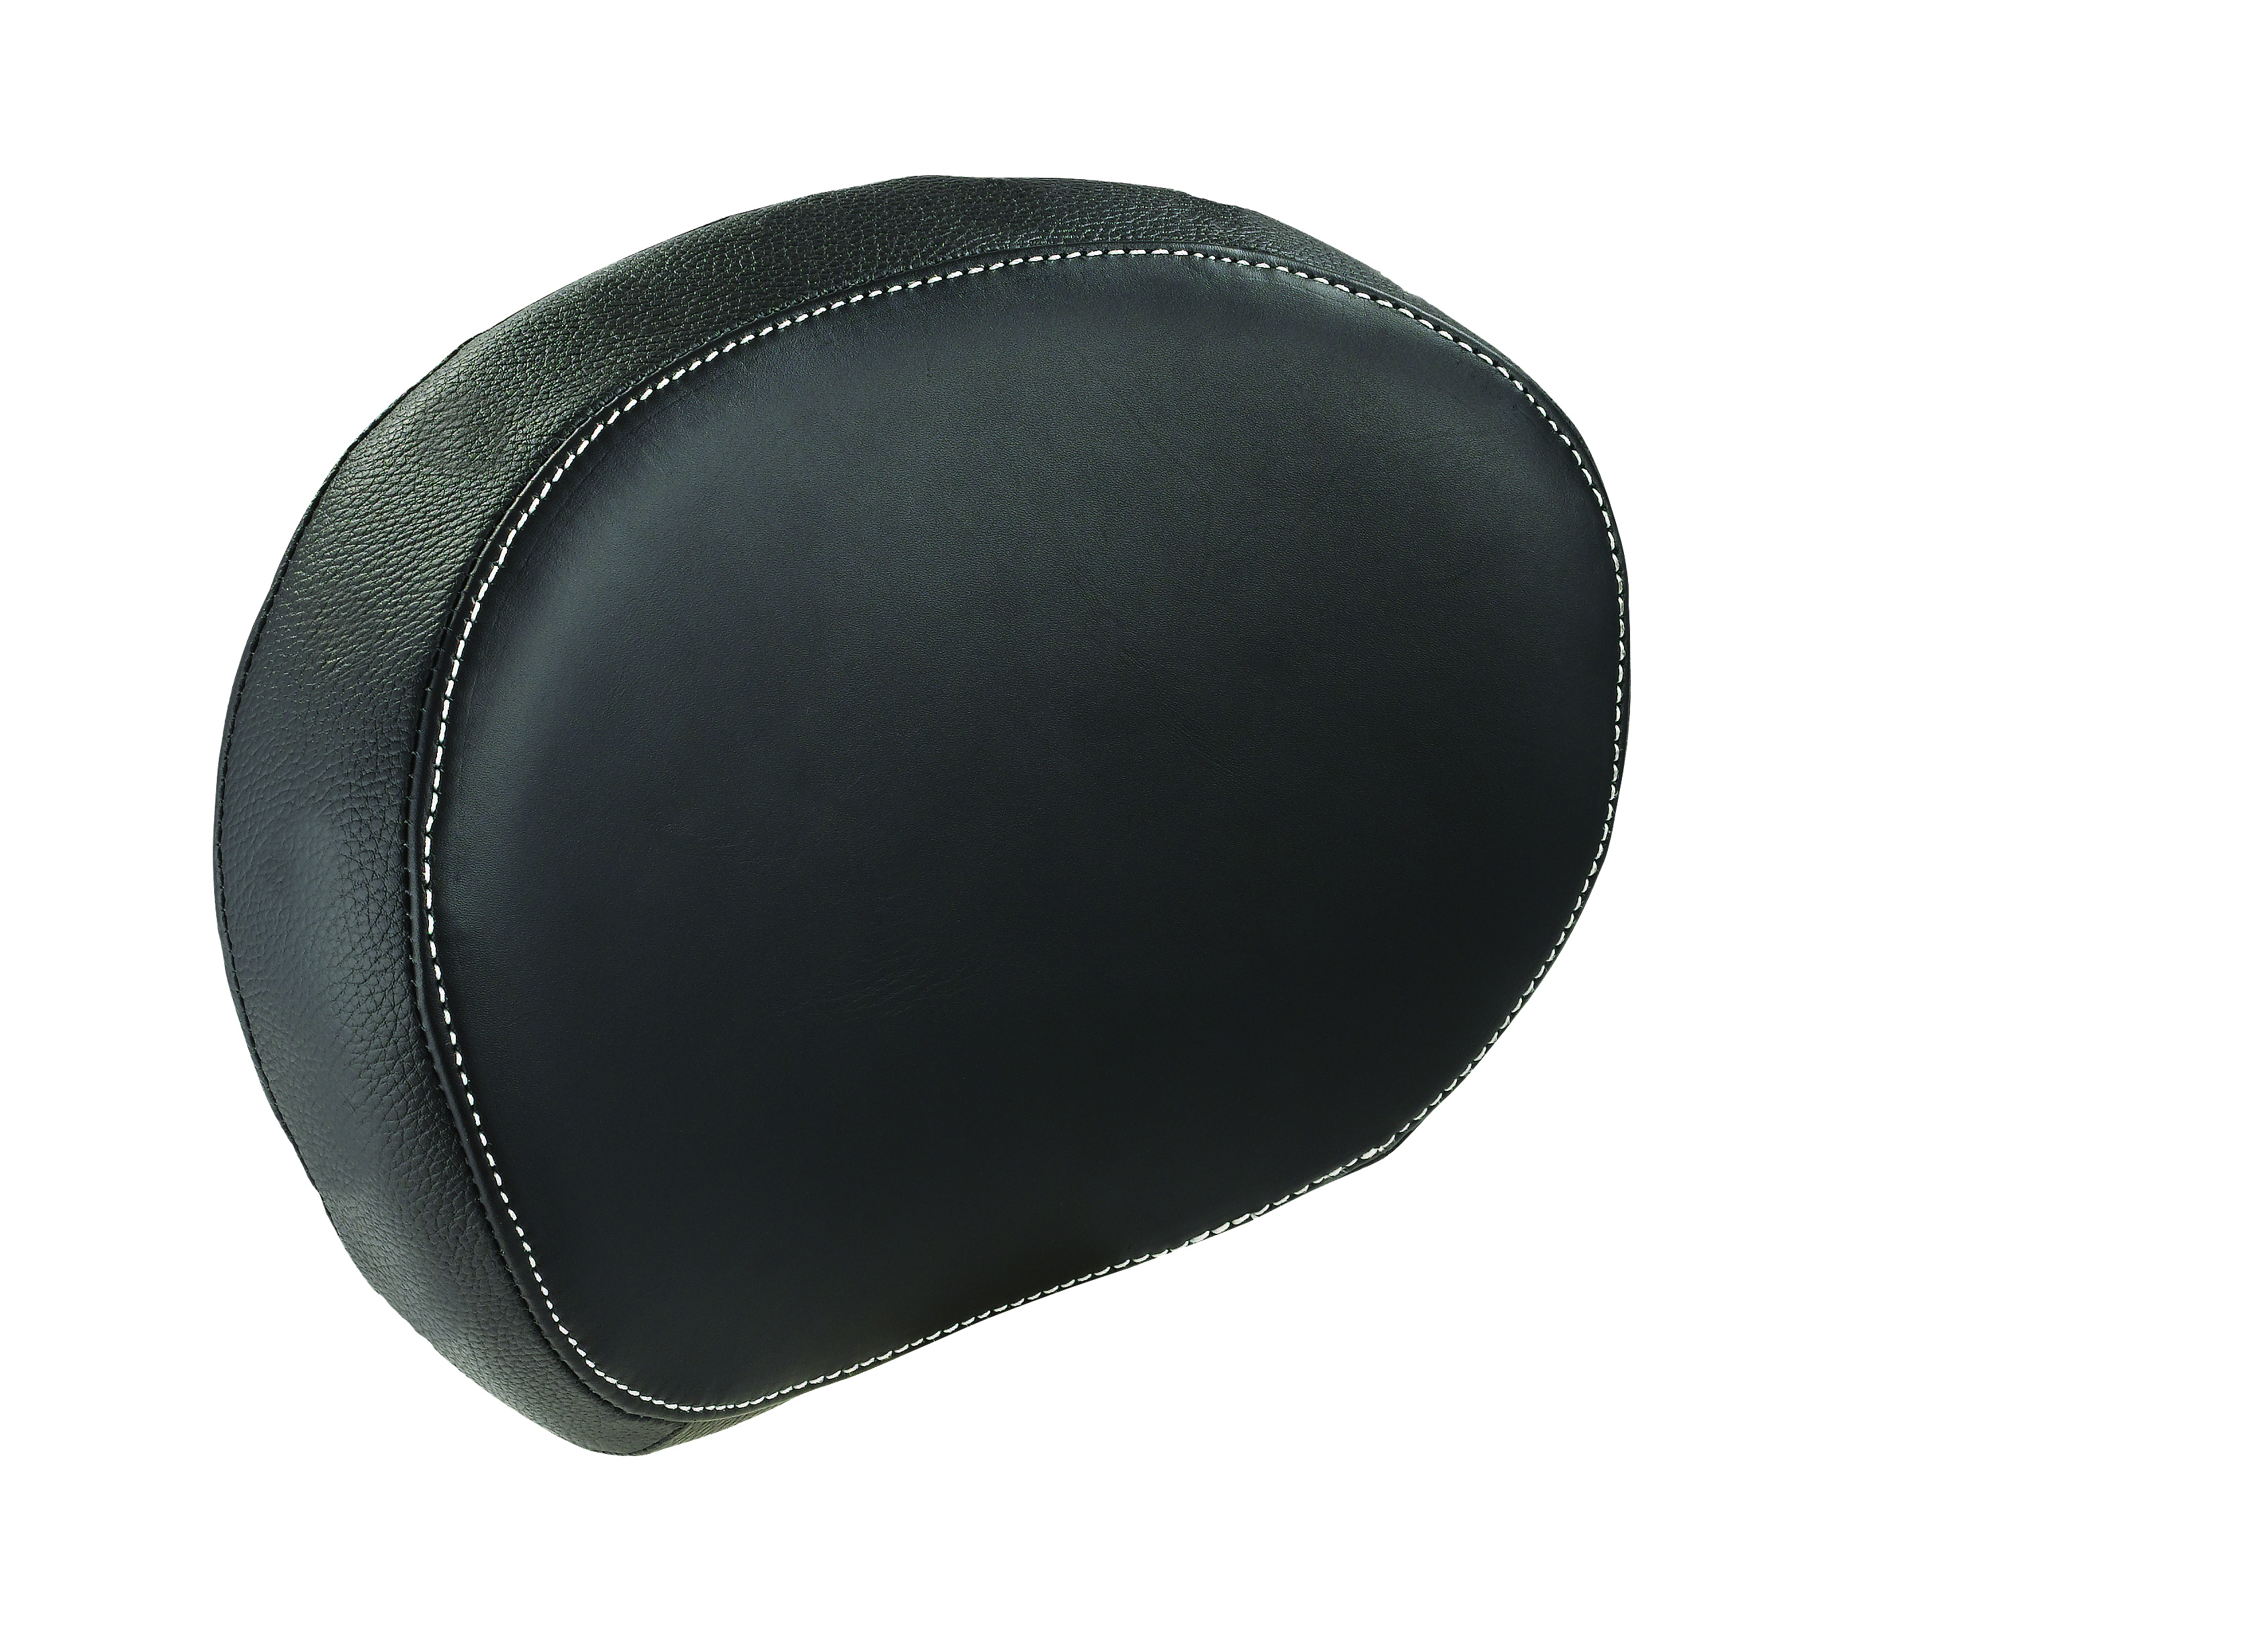 Genuine Leather Passenger Backrest Pad - Black